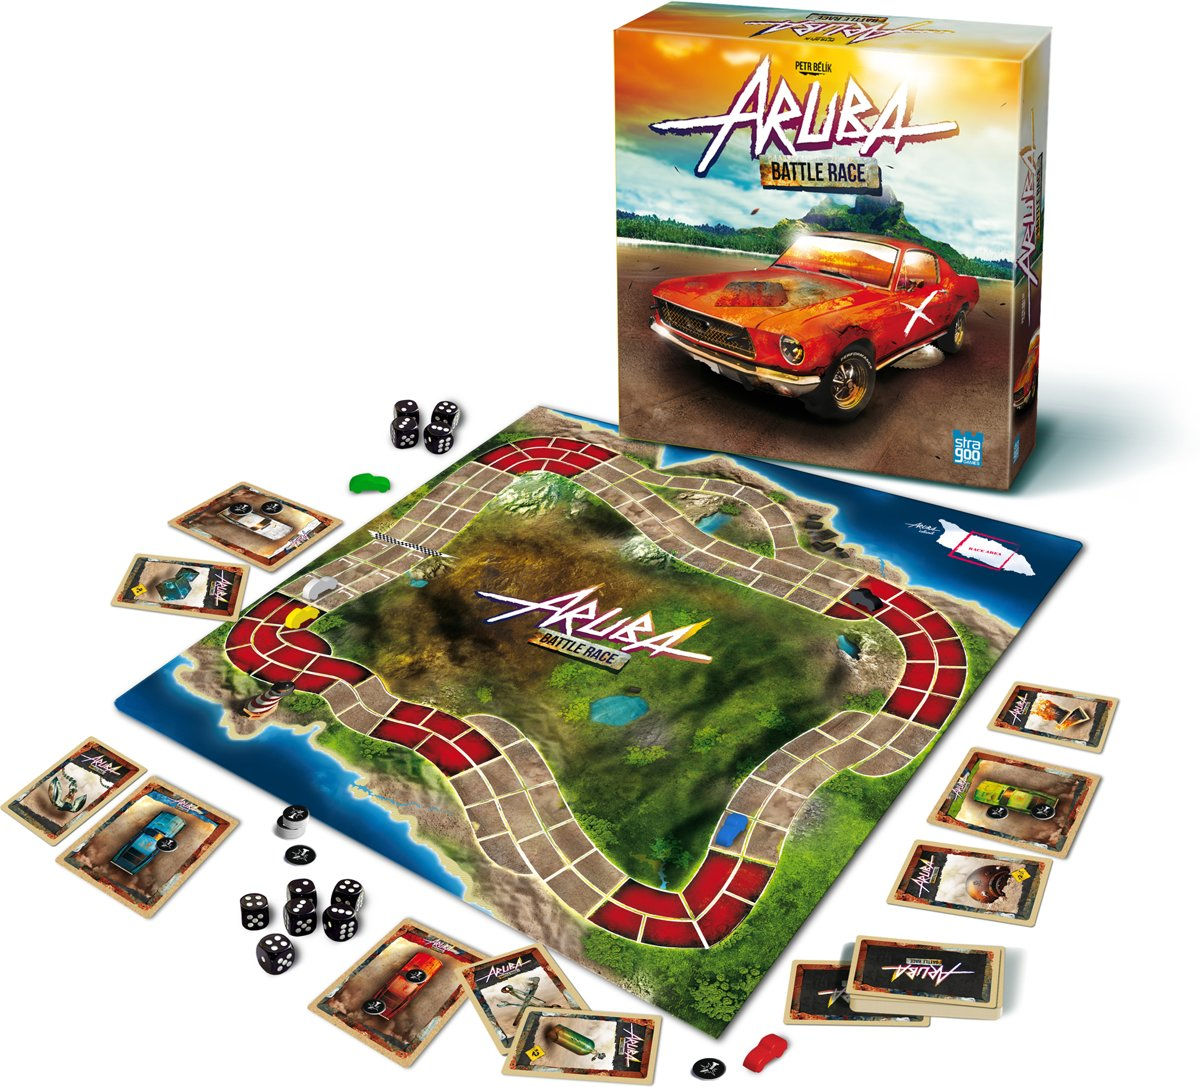 Aruba: Battle Race Board Game